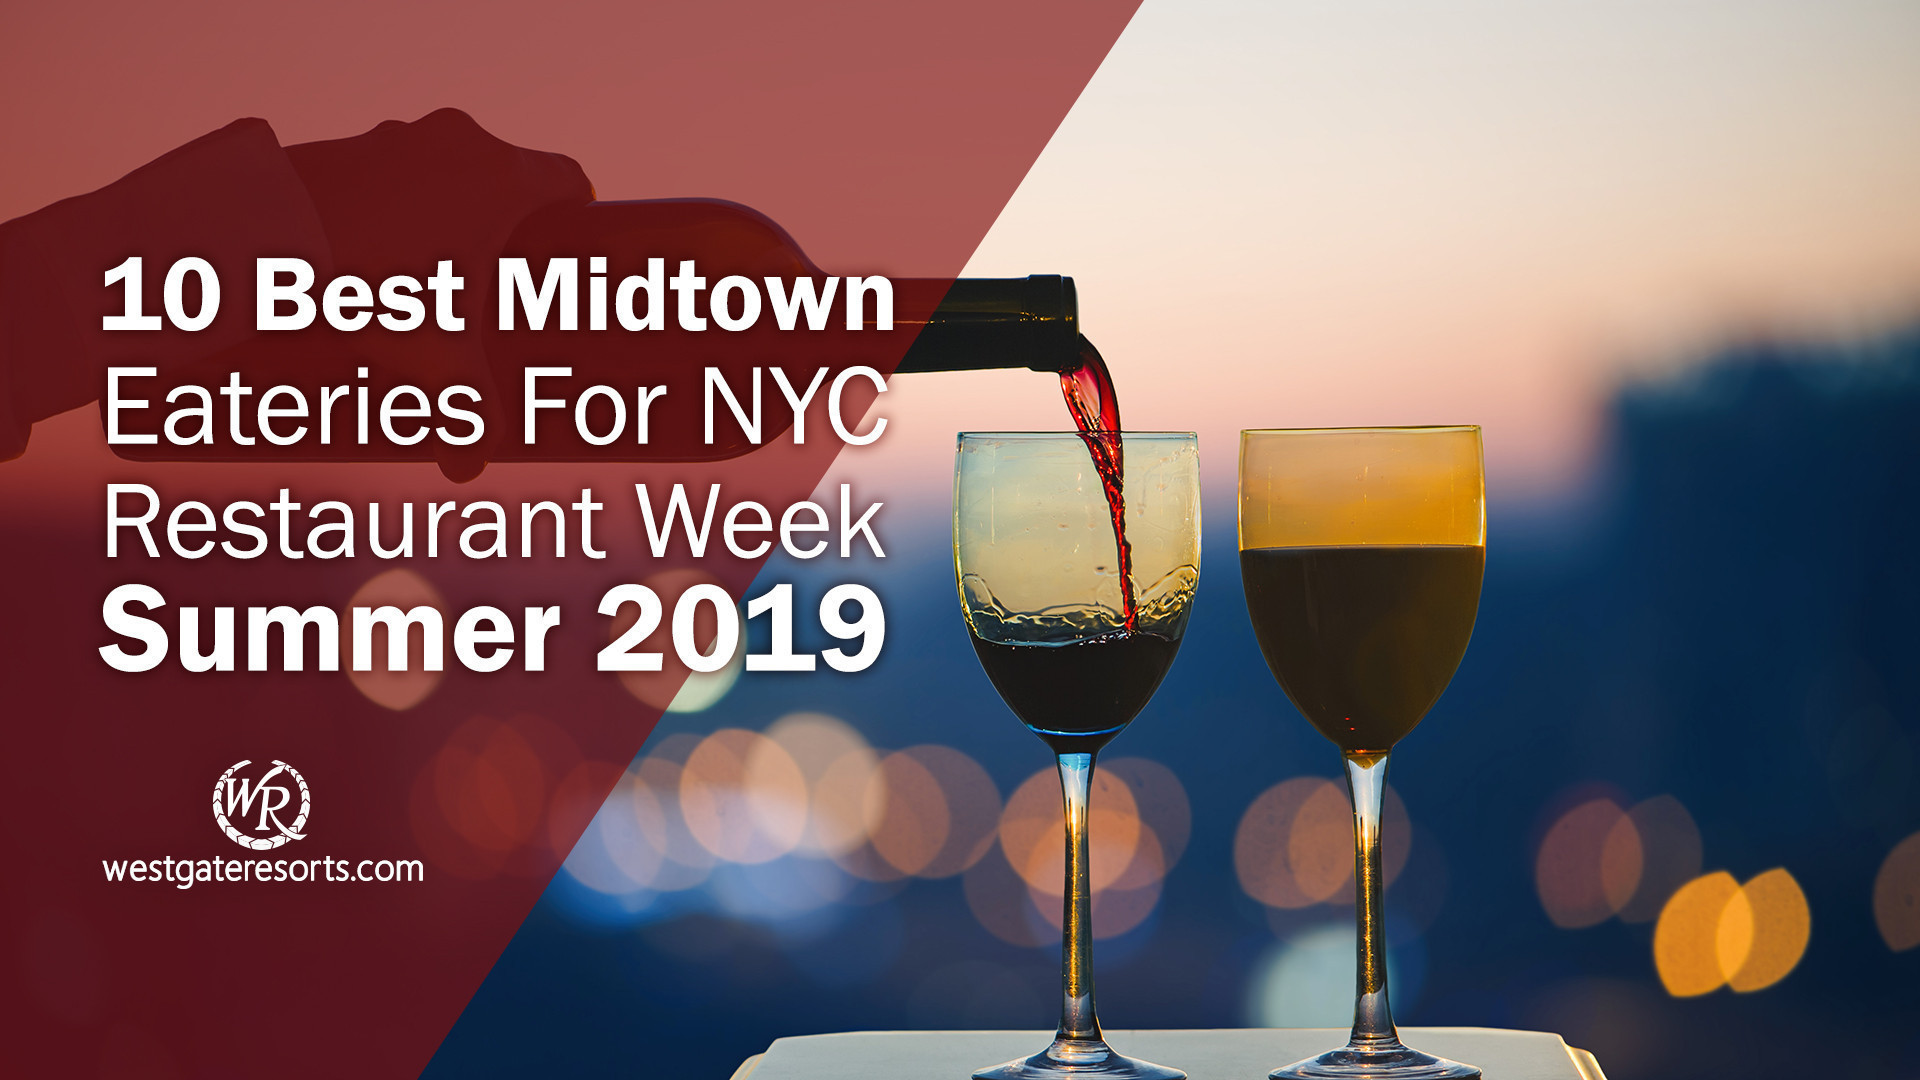 10 Best Midtown Eateries For NYC Restaurant Week Summer 2019